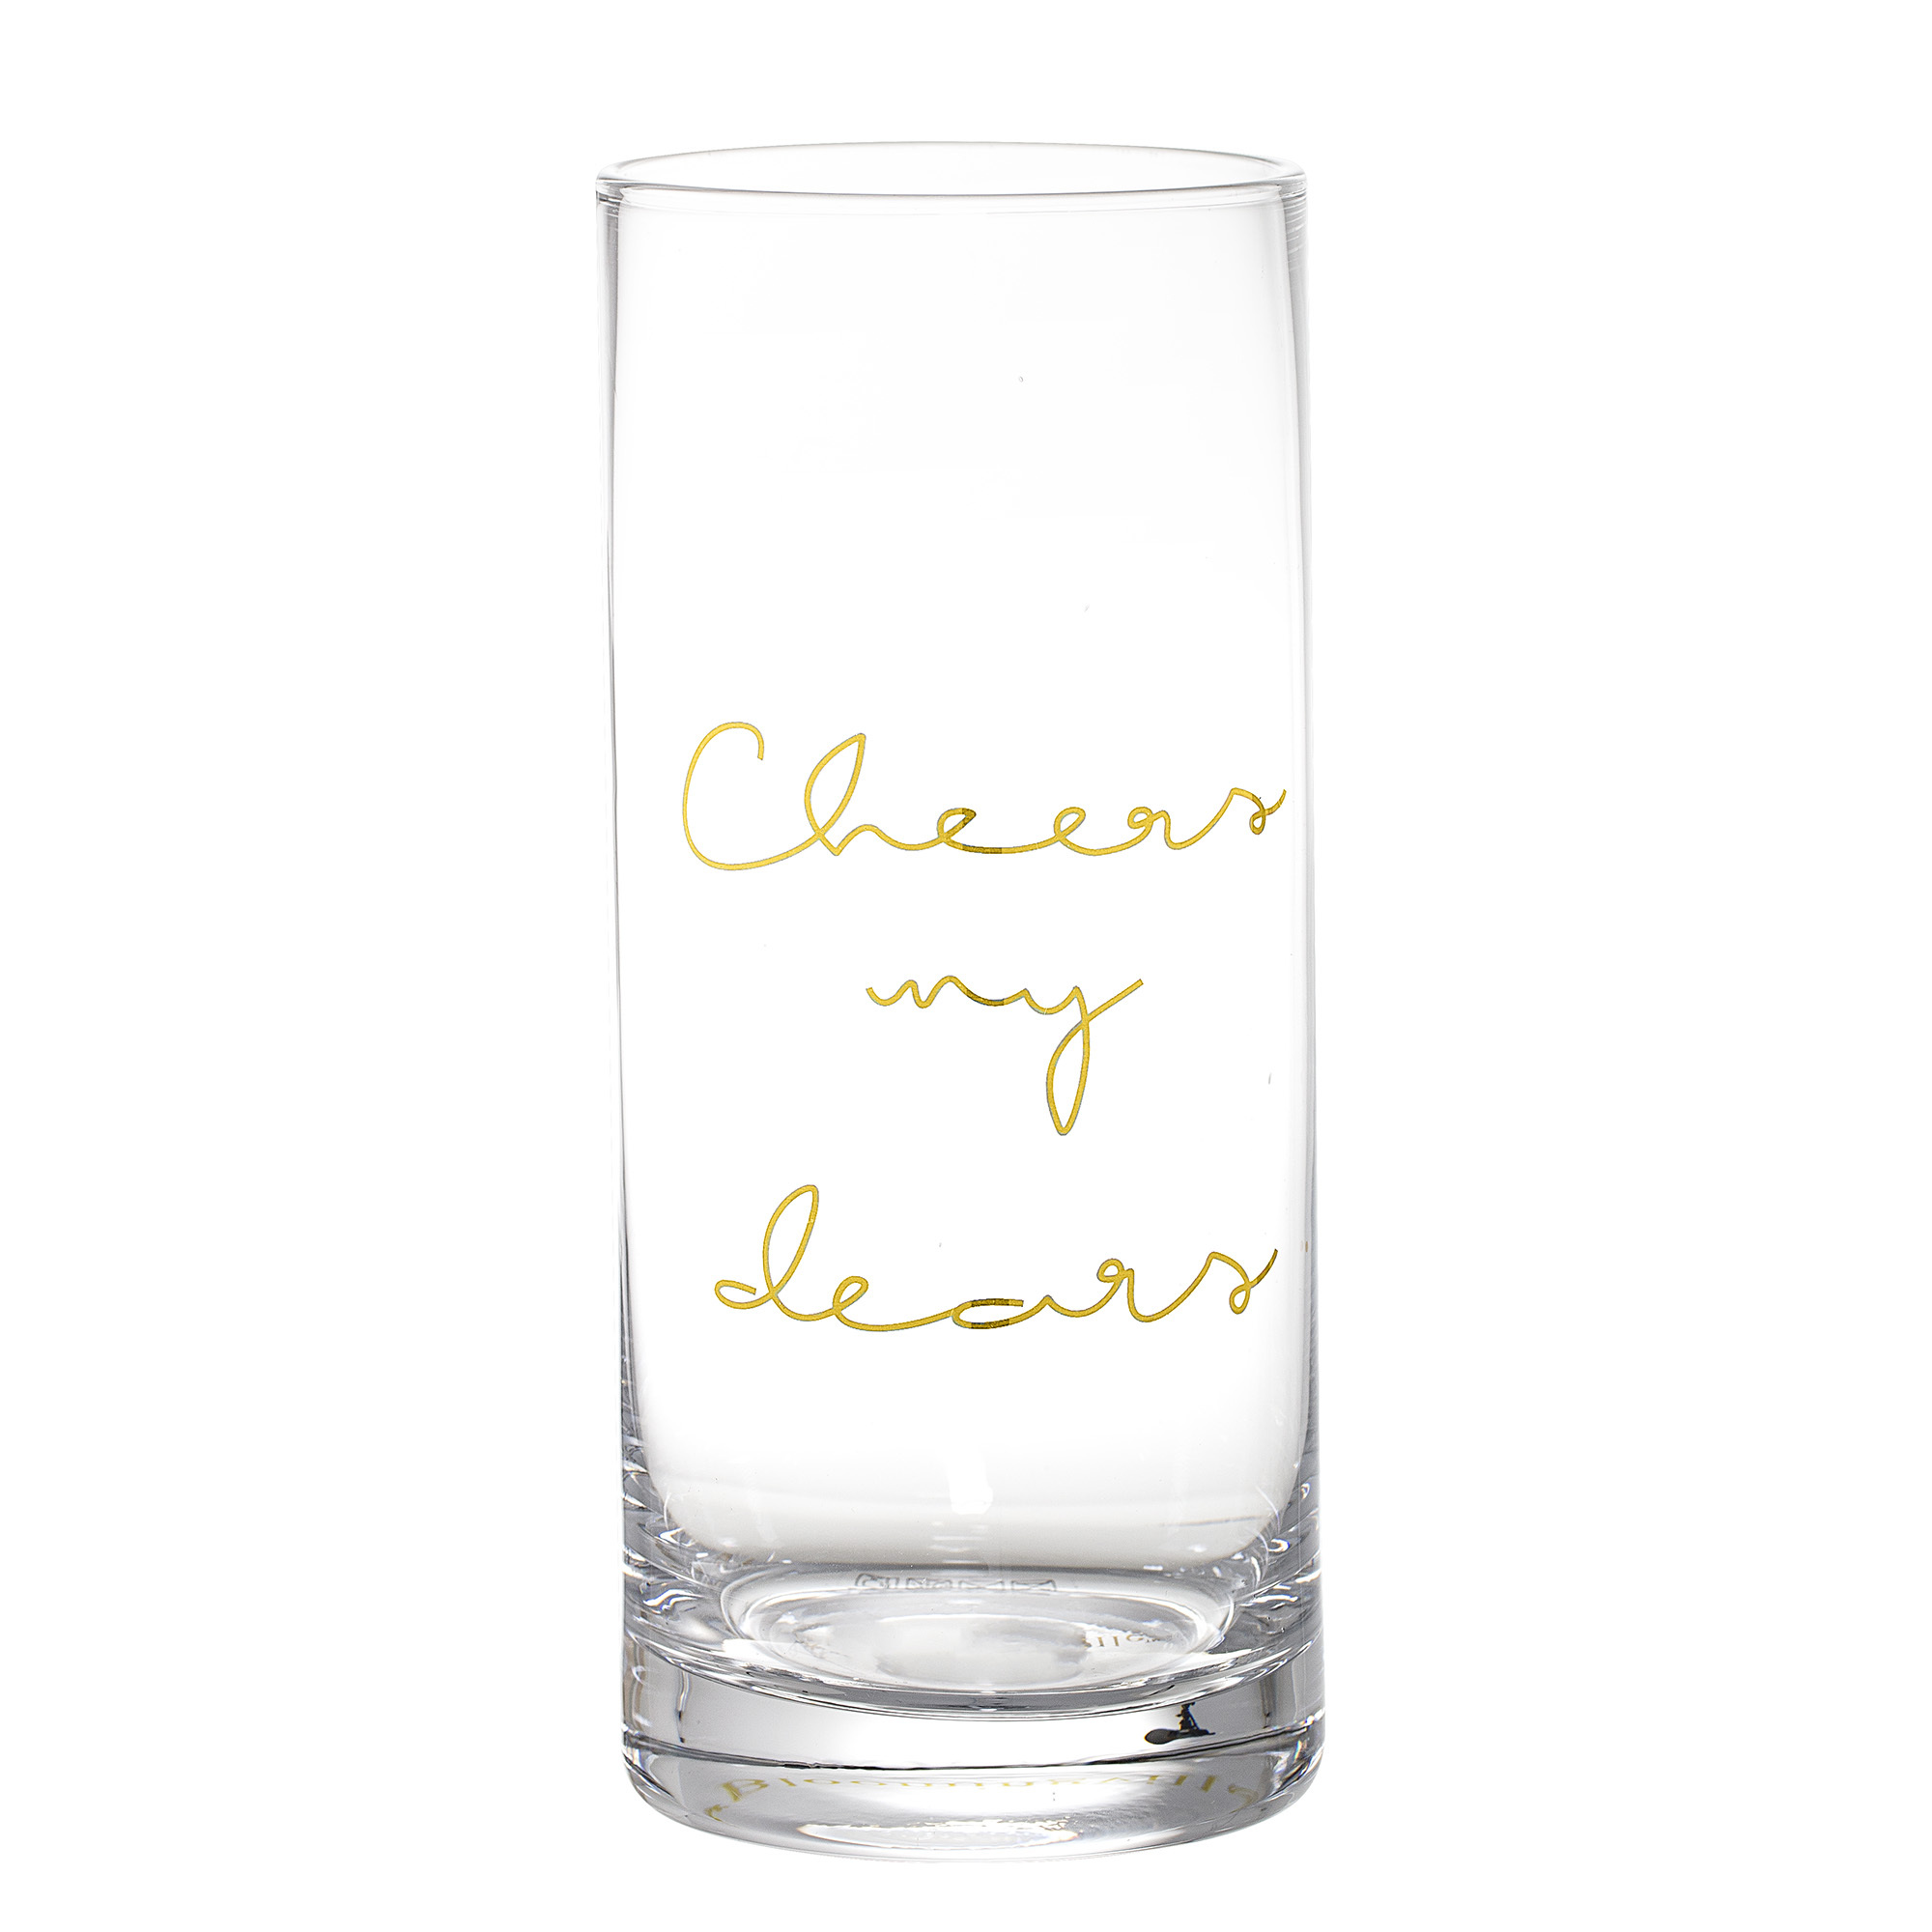 Trinkglas_Longdrink_Glas_Gold_Aufschrift_Cheers_my_dears_Bloomingville